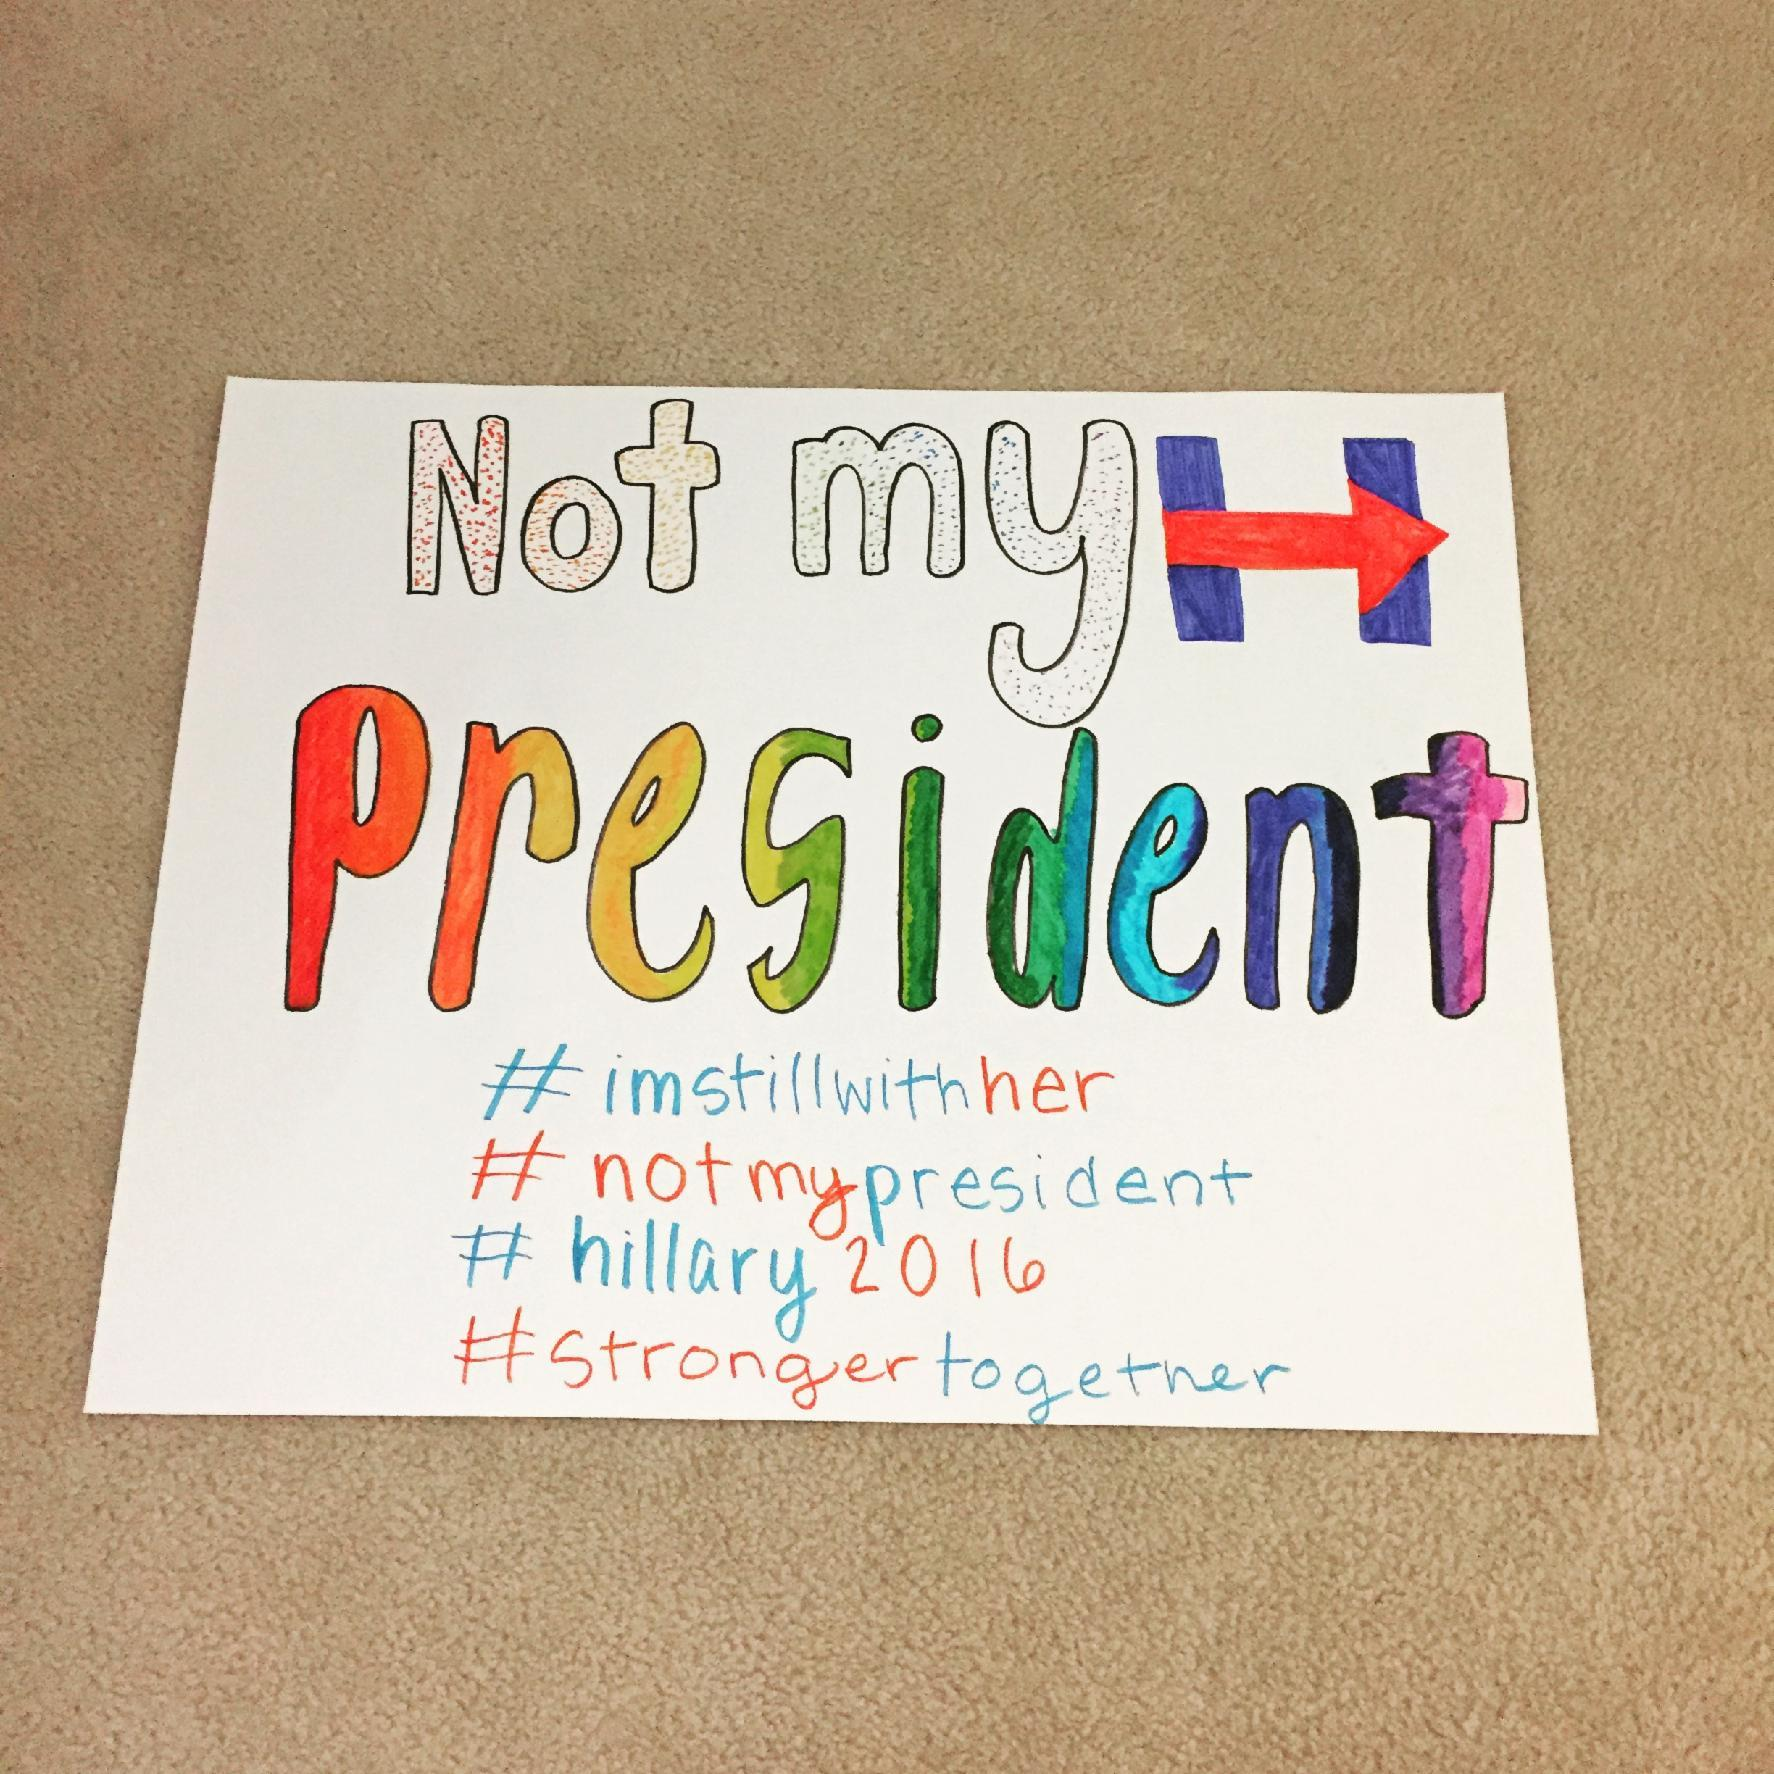 My protest sign #1